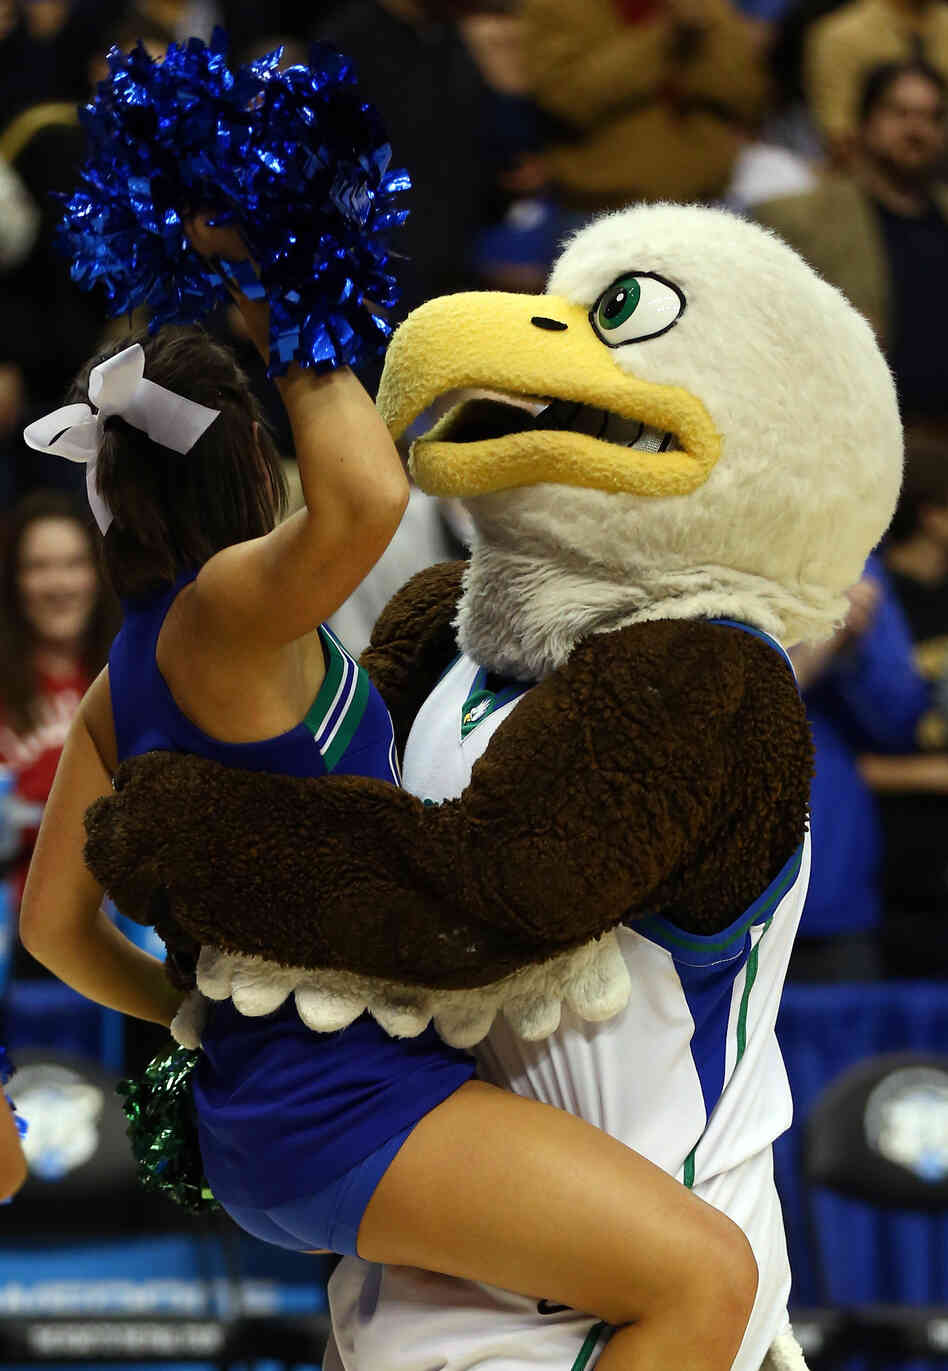 The Florida Gulf Coast Eagles mascot picks up an Eagles cheerleader after the team's 81-71 victory agai